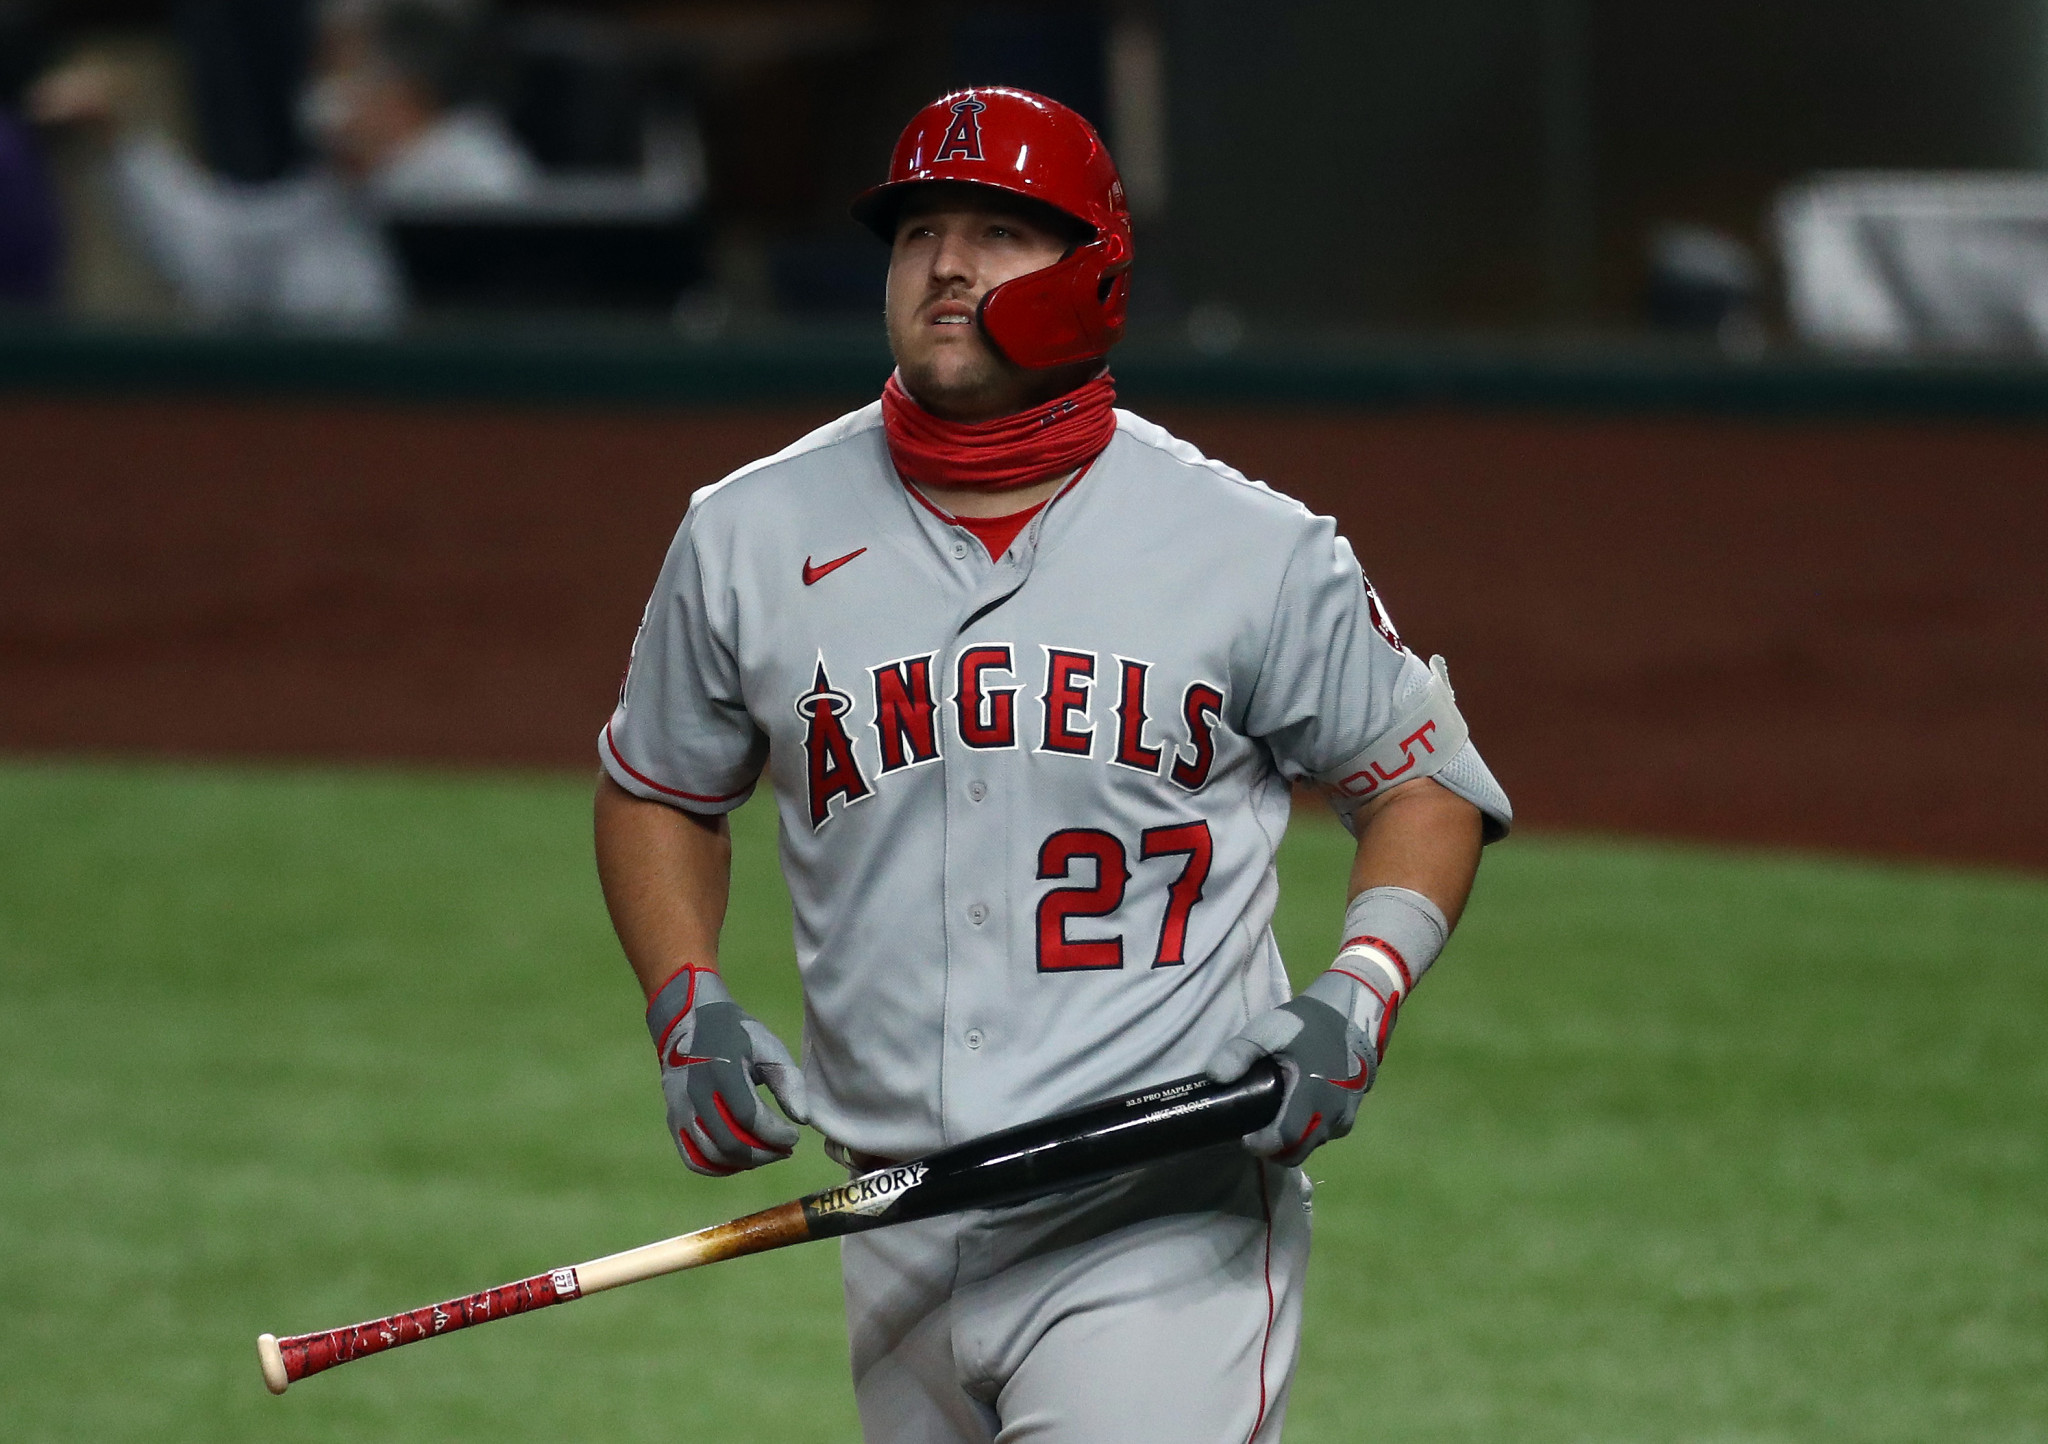 Trout rookie baseball card becomes highest-price trading card ever